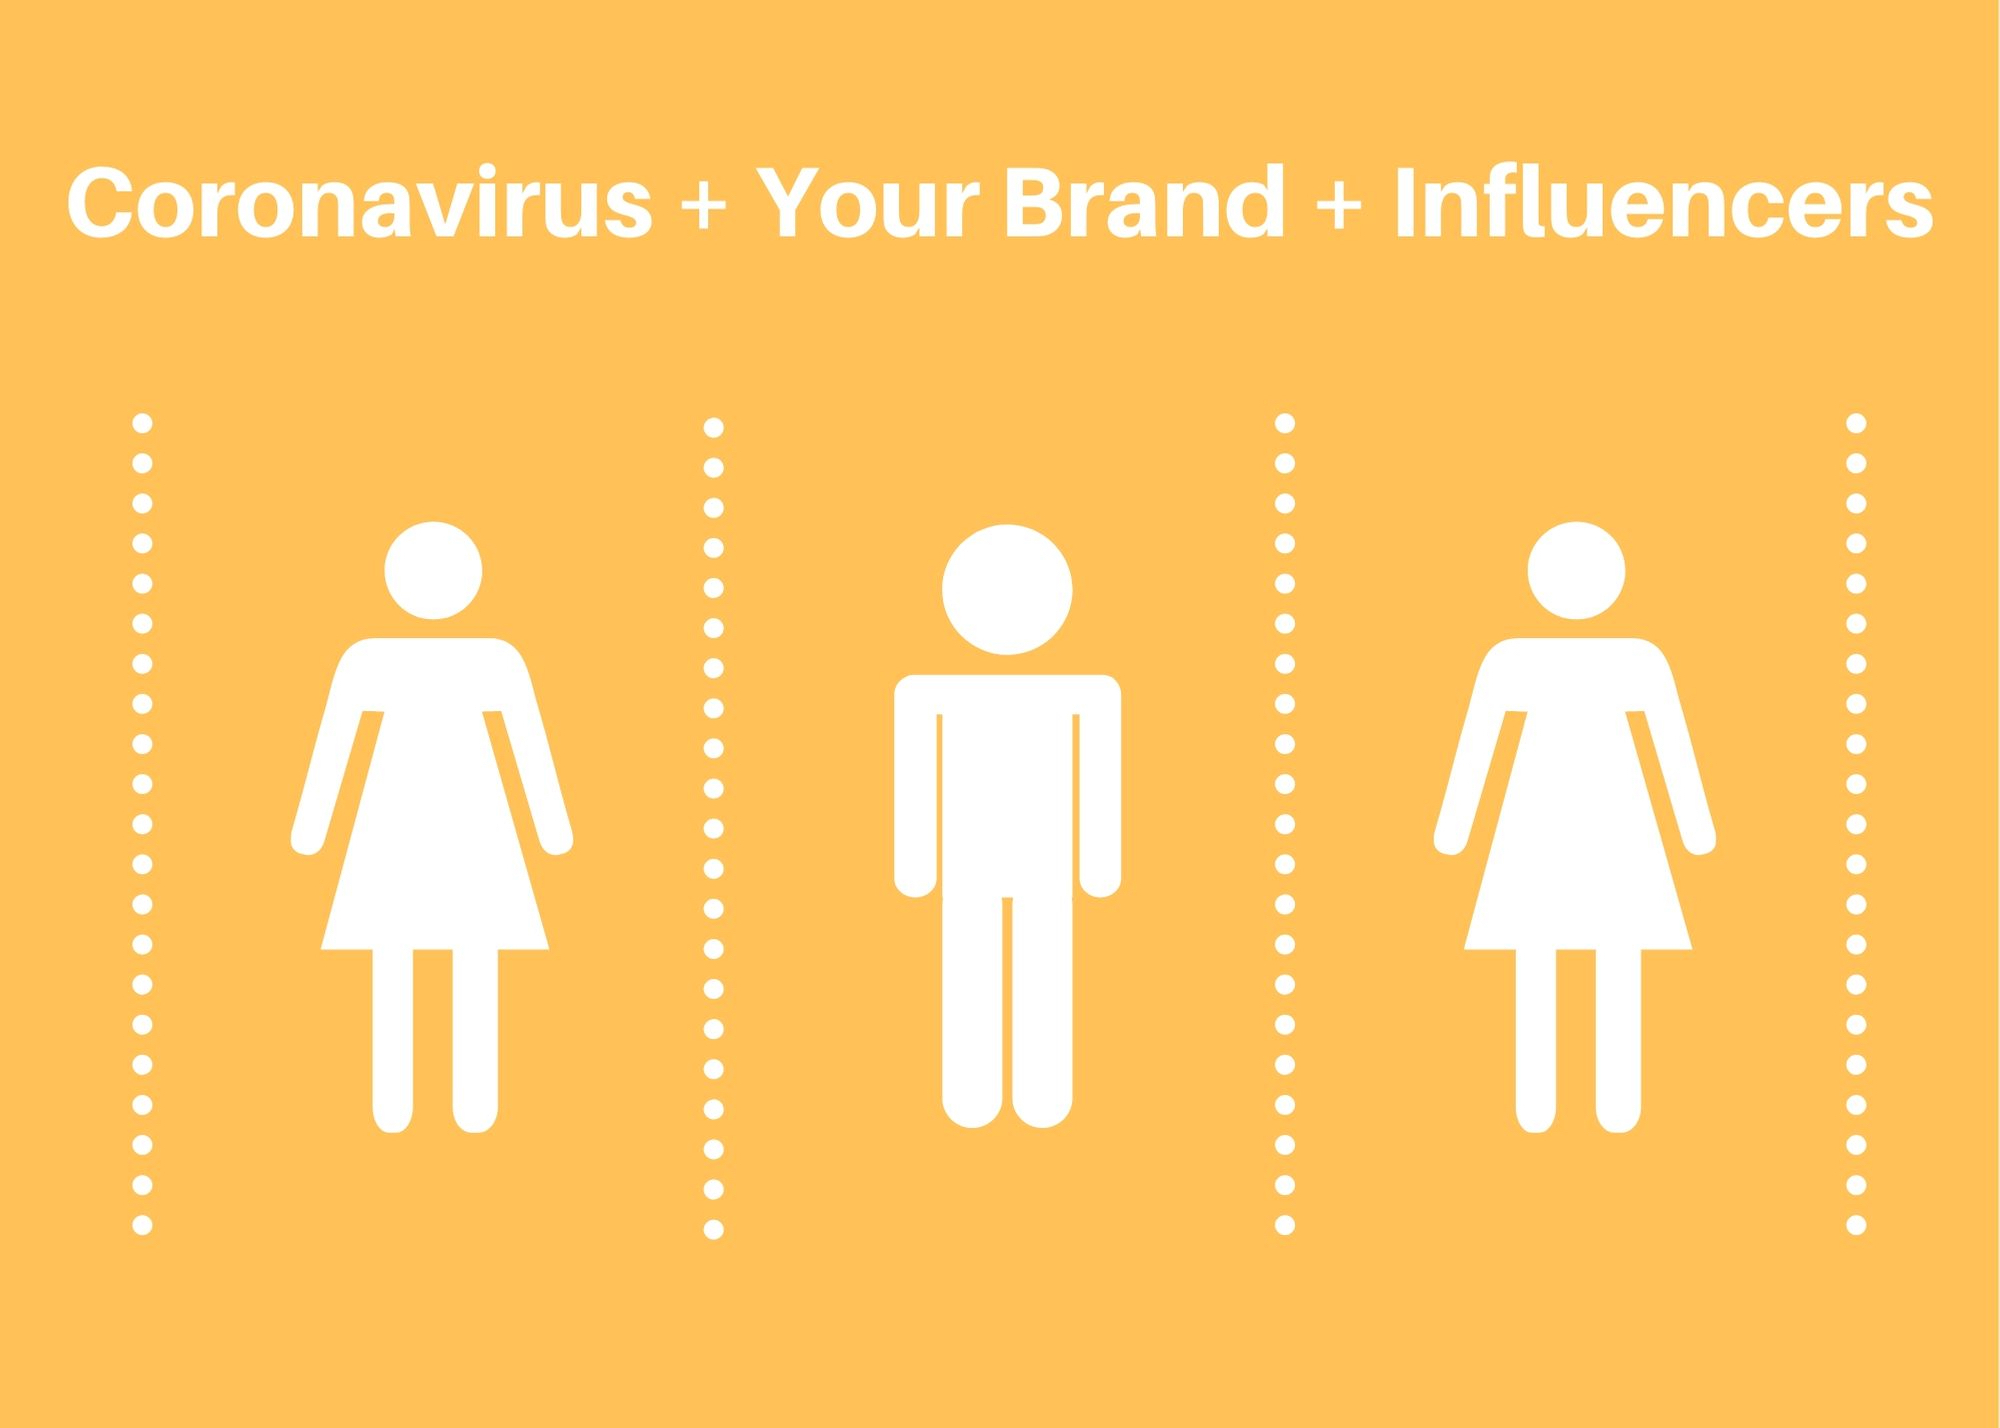 coronavirus, brands, and influencers